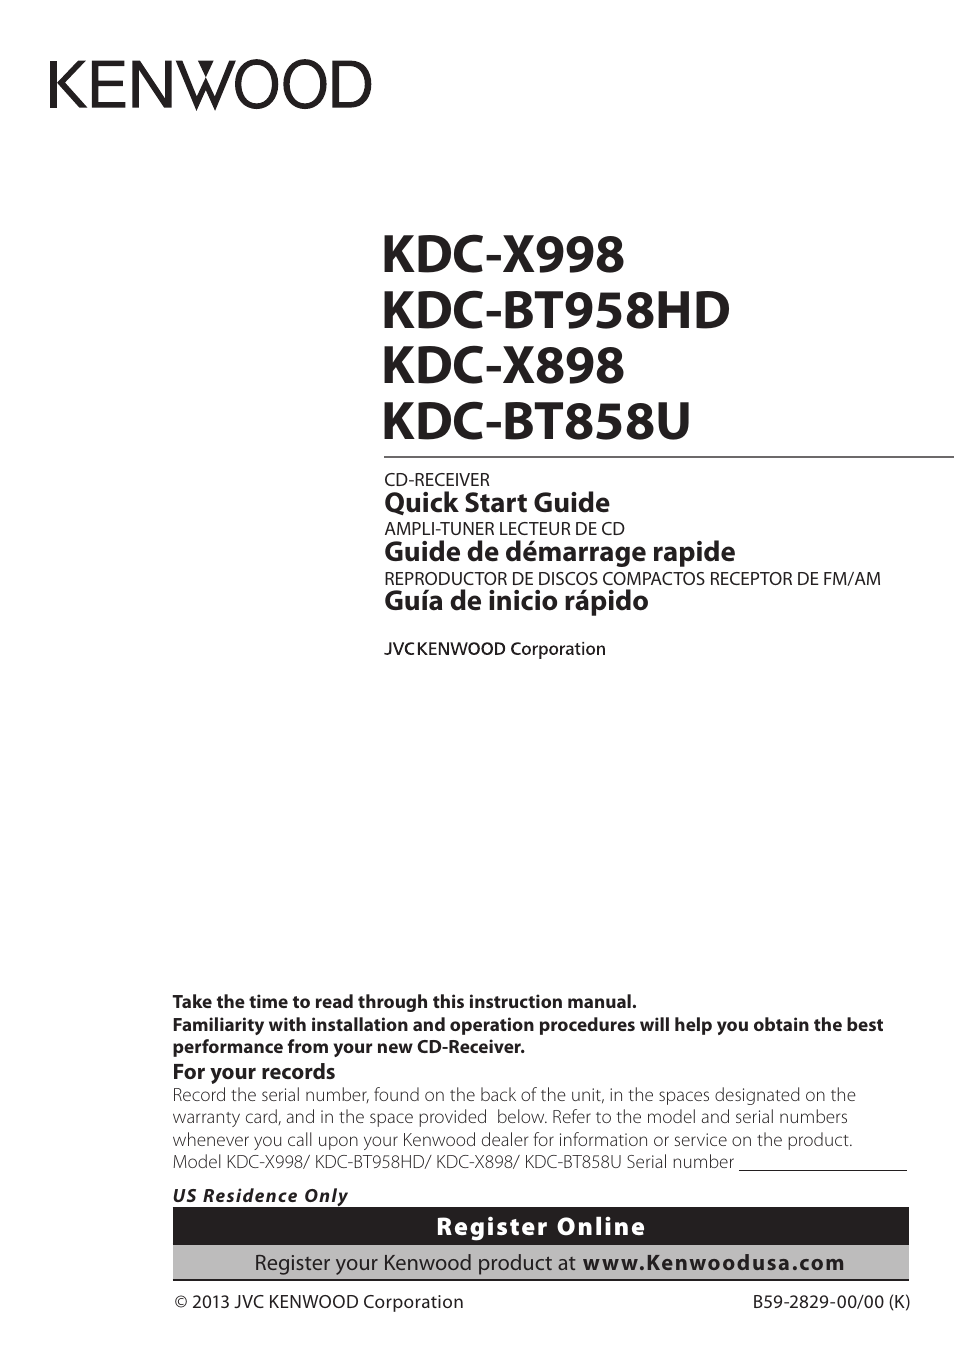 kenwood kdc x898 page1 kenwood kdc x898 user manual 48 pages also for kdc x998 kenwood kdc-x998 wiring diagram at suagrazia.org